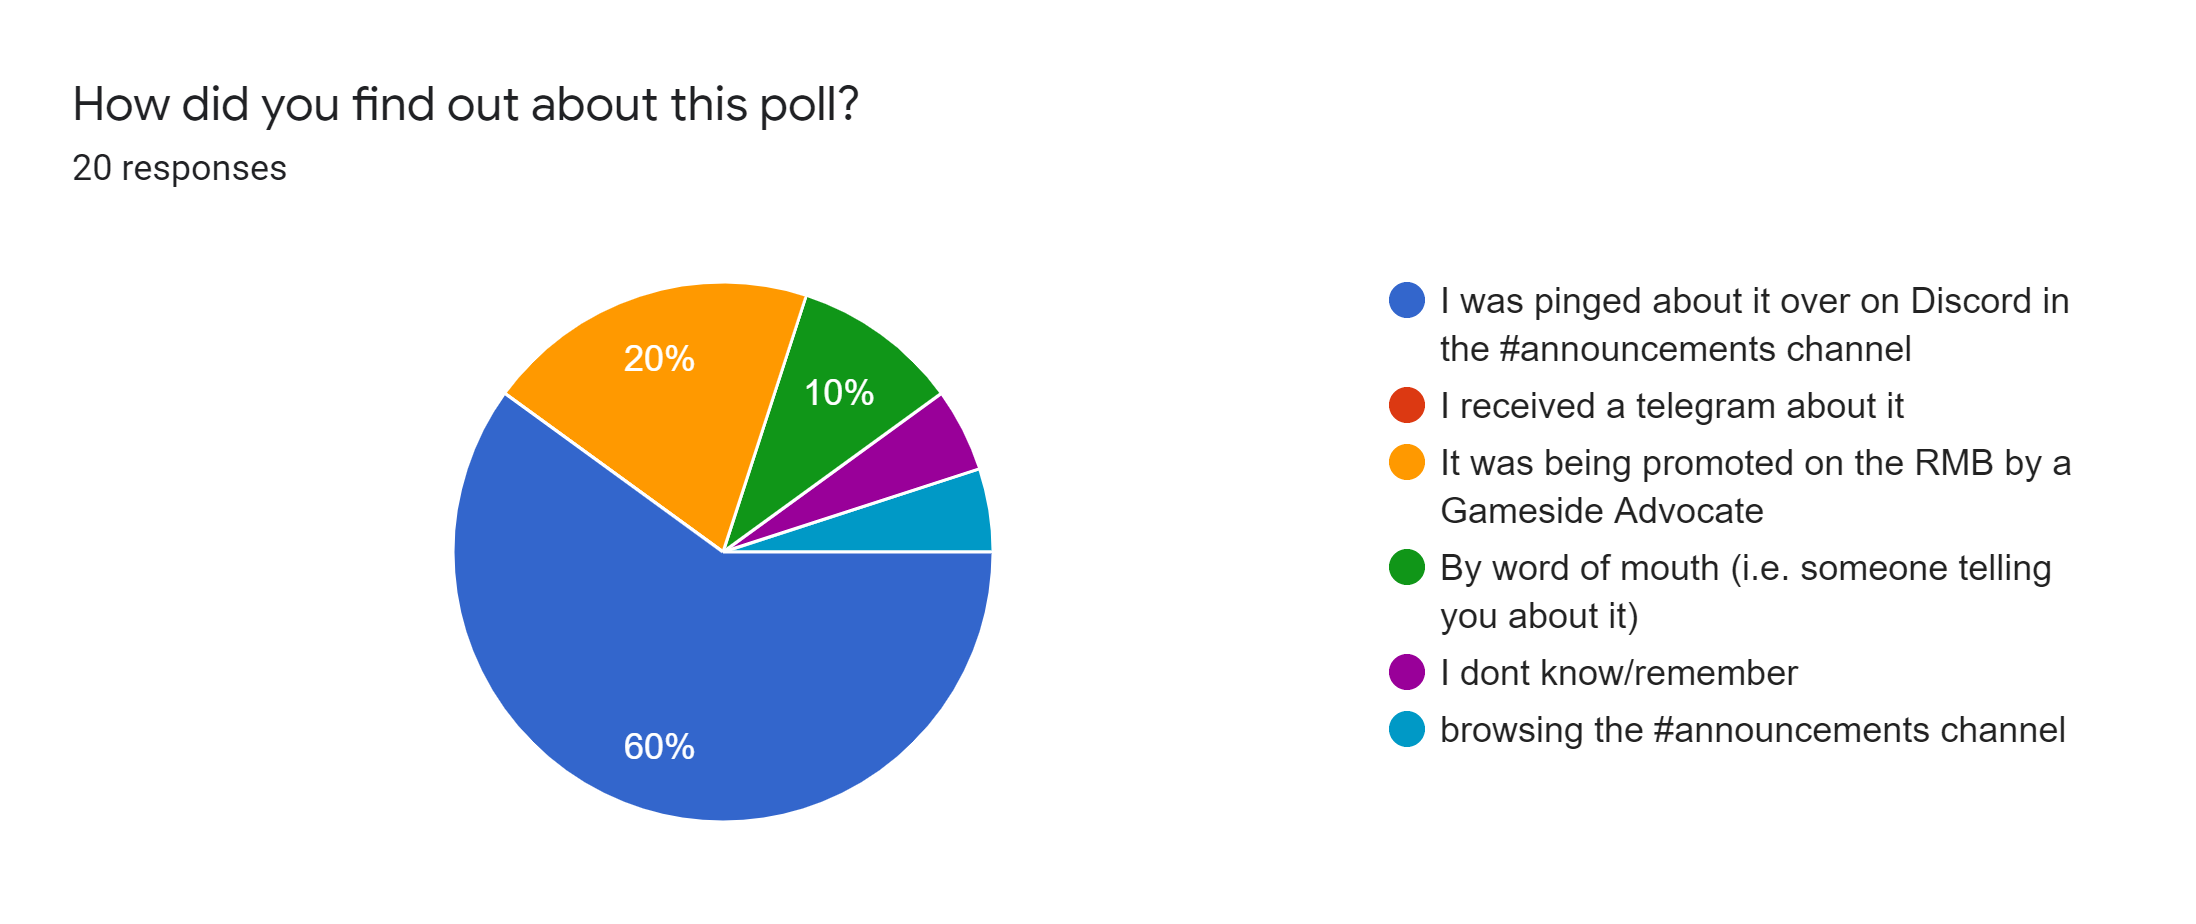 Forms response chart. Question title: How did you find out about this poll?. Number of responses: 20 responses.